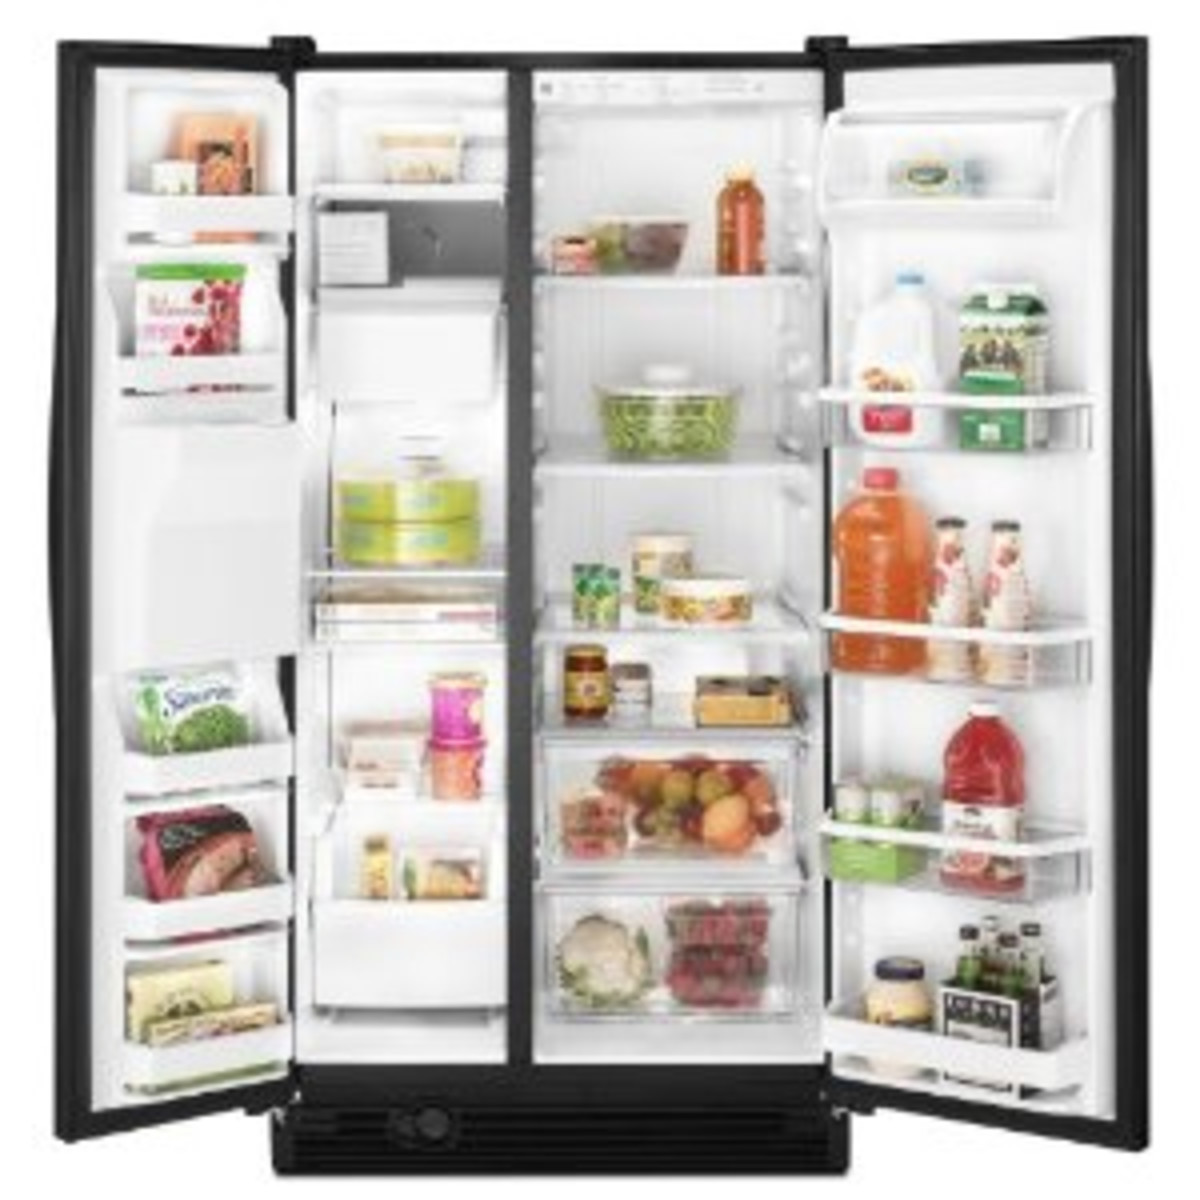 there are many reasons why someone might choose to buy a second hand fridge rather than paying full price for a brand new one